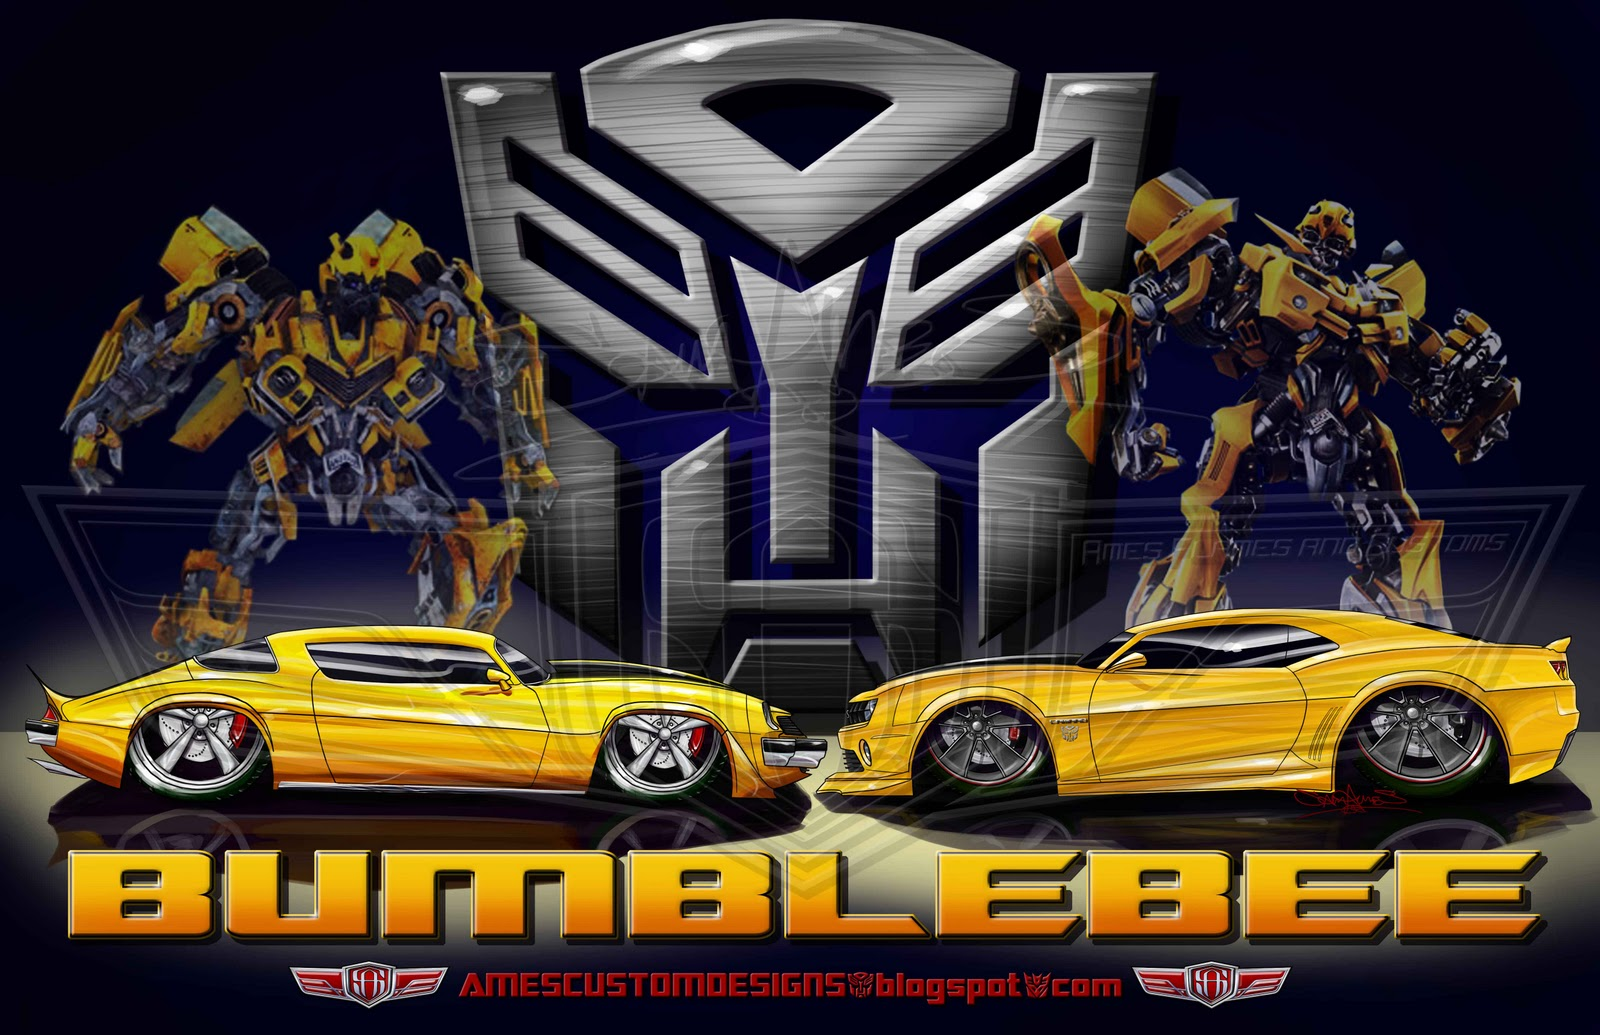 Transformers Iphone 6 Plus Wallpaper Sam Ames Transformers Bumblebee Old And New 1977 Camaro